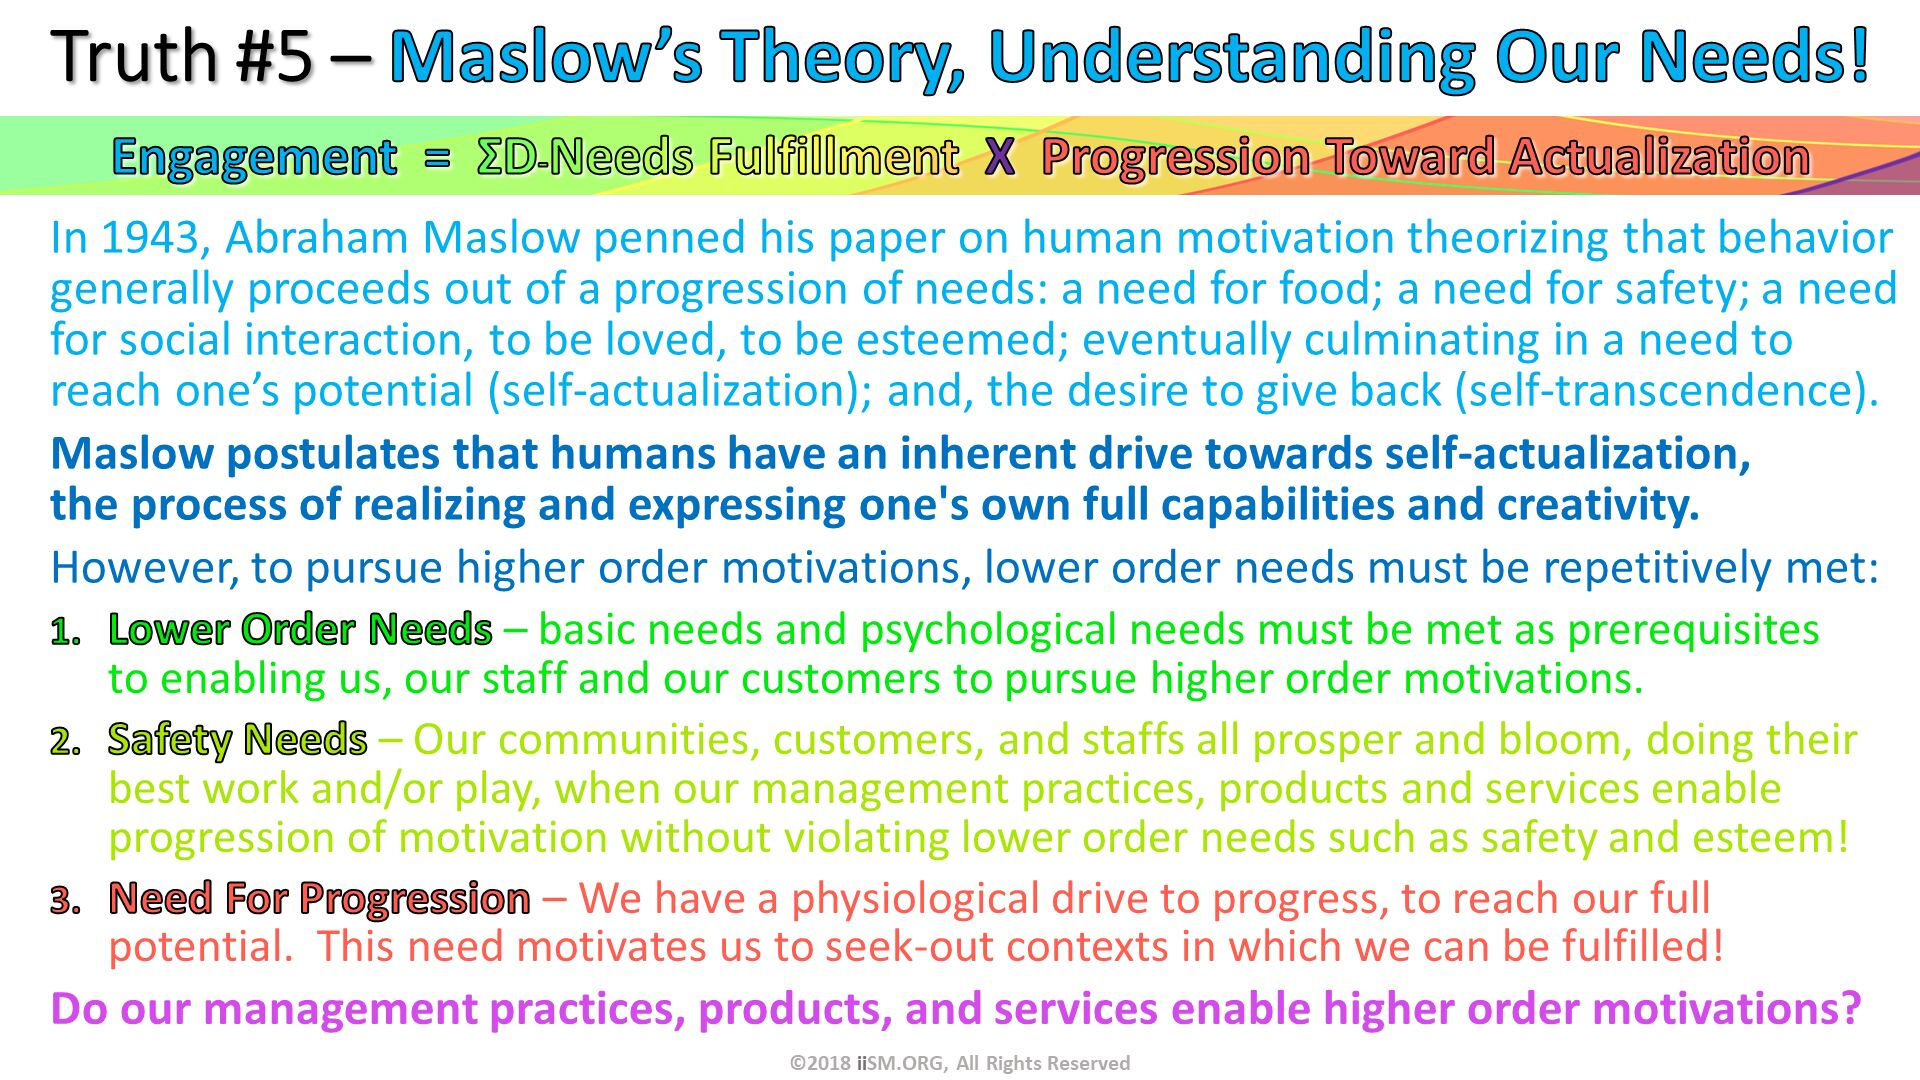 In 1943, Abraham Maslow penned his paper on human motivation theorizing that behavior generally proceeds out of a progression of needs: a need for food; a need for safety; a need for social interaction, to be loved, to be esteemed; eventually culminating in a need to reach one's potential (self-actualization); and, the desire to give back (self-transcendence). Maslow postulates that humans have an inherent drive towards self-actualization, the process of realizing and expressing one's own full capabilities and creativity.  However, to pursue higher order motivations, lower order needs must be repetitively met: . Truth #5 – Maslow's Theory, Understanding Our Needs! . ©2018 iiSM.ORG, All Rights Reserved. Lower Order Needs – basic needs and psychological needs must be met as prerequisites to enabling us, our staff and our customers to pursue higher order motivations. Safety Needs – Our communities, customers, and staffs all prosper and bloom, doing their best work and/or play, when our management practices, products and services enable progression of motivation without violating lower order needs such as safety and esteem! Need For Progression – We have a physiological drive to progress, to reach our full potential.  This need motivates us to seek-out contexts in which we can be fulfilled! Do our management practices, products, and services enable higher order motivations?  . Engagement  =  ΣD-Needs Fulfillment  X  Progression Toward Actualization.